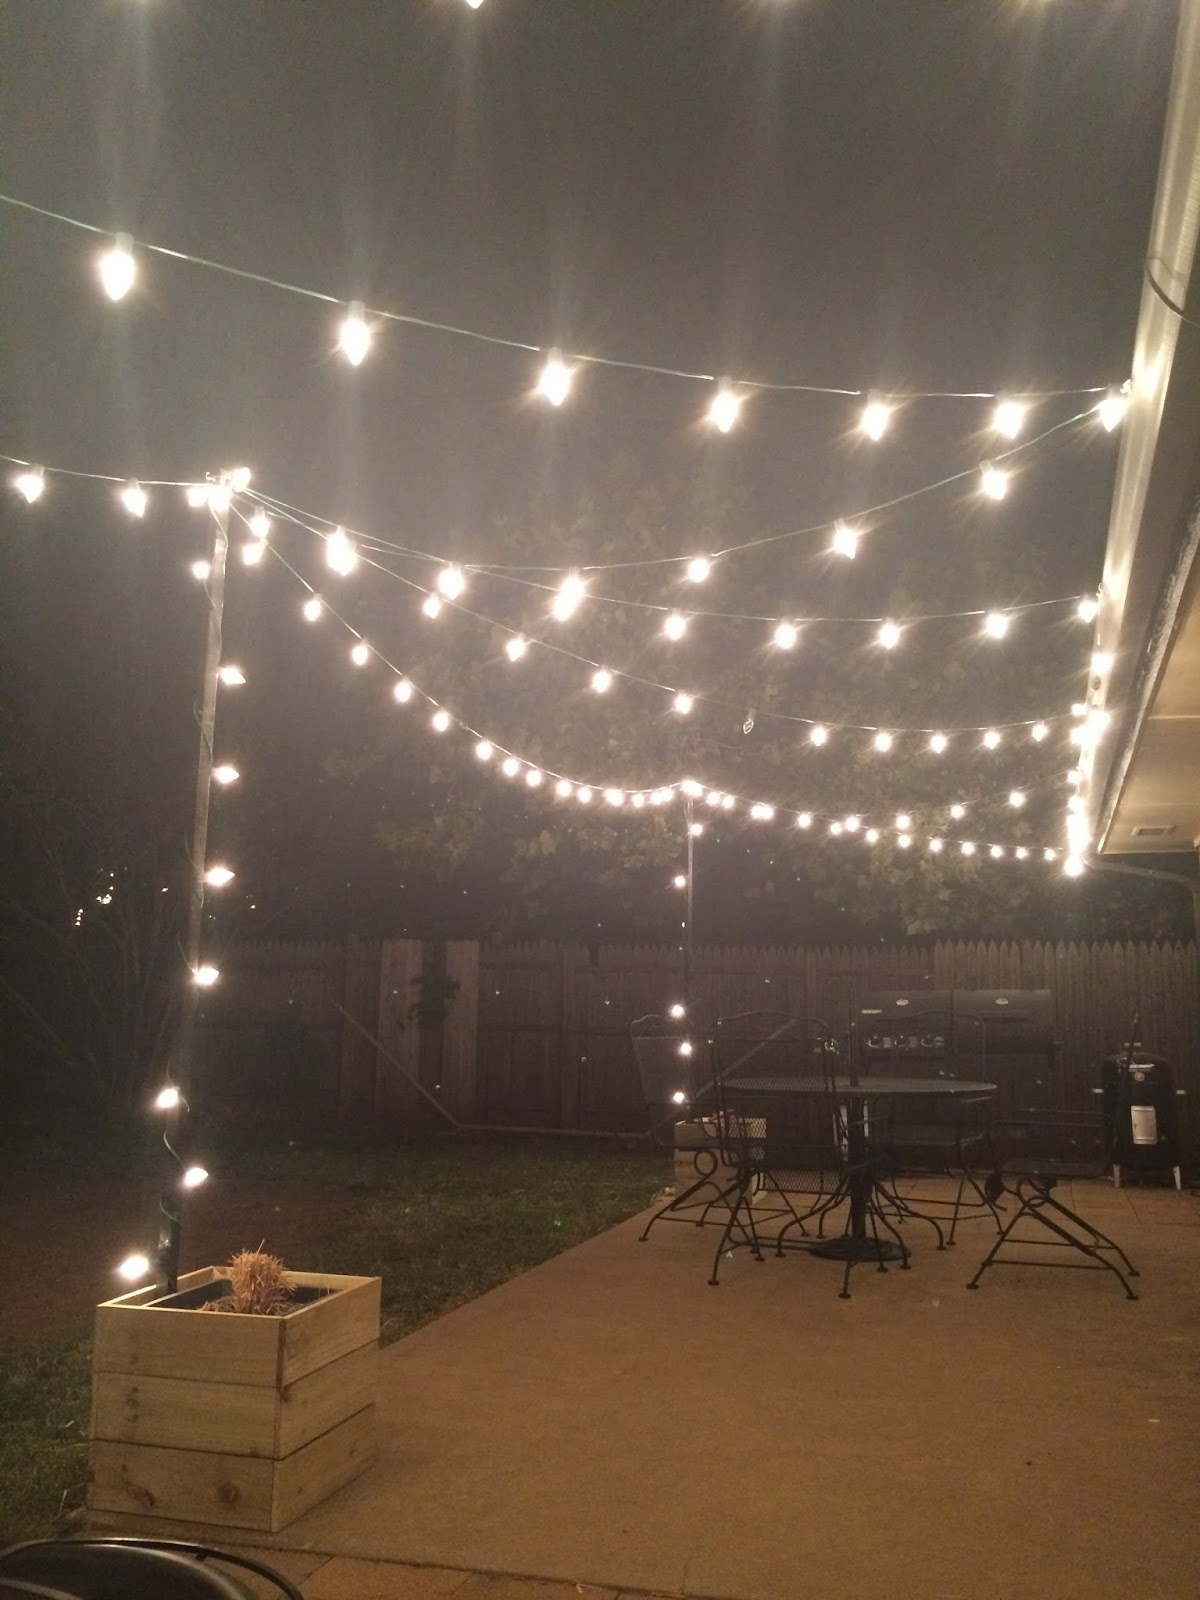 planter lighting. And, I Love The Look Of These Planter Boxes Which Was Just A Bonus!! All In Cost Less Than $20 To Build Three! Lighting C